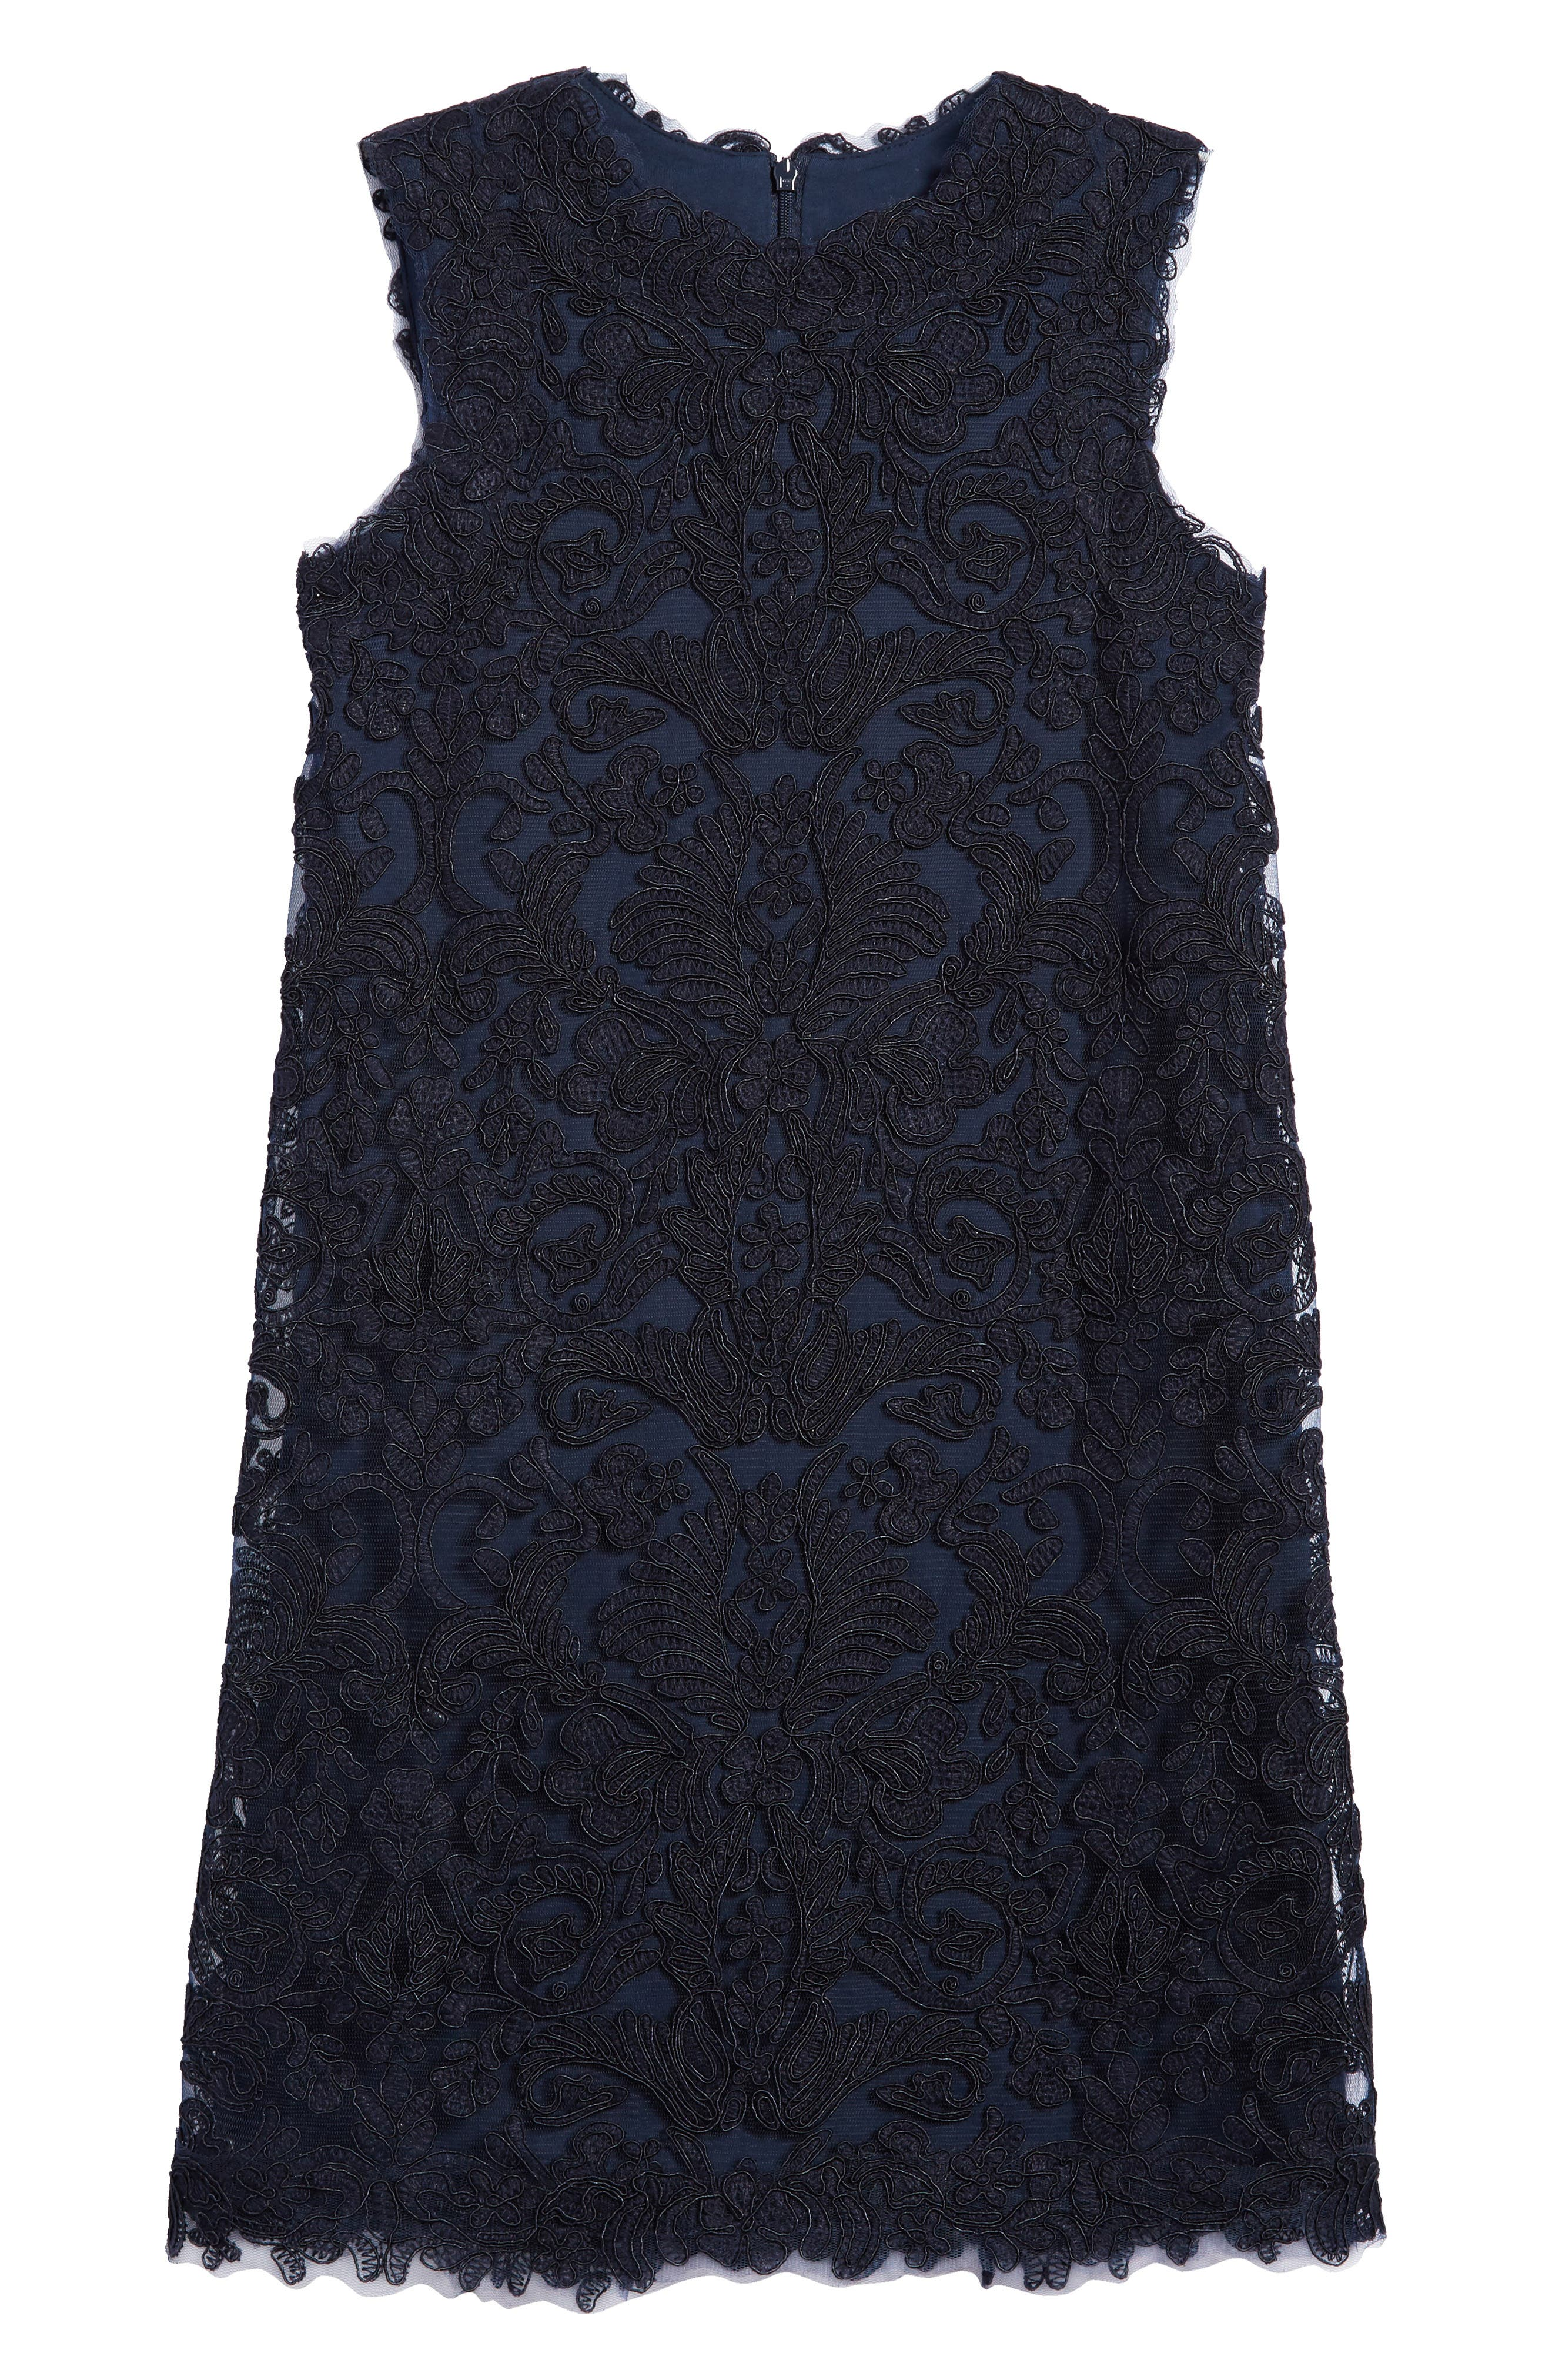 'Honeysuckle' Embroidered Tulle Dress,                             Main thumbnail 1, color,                             Navy